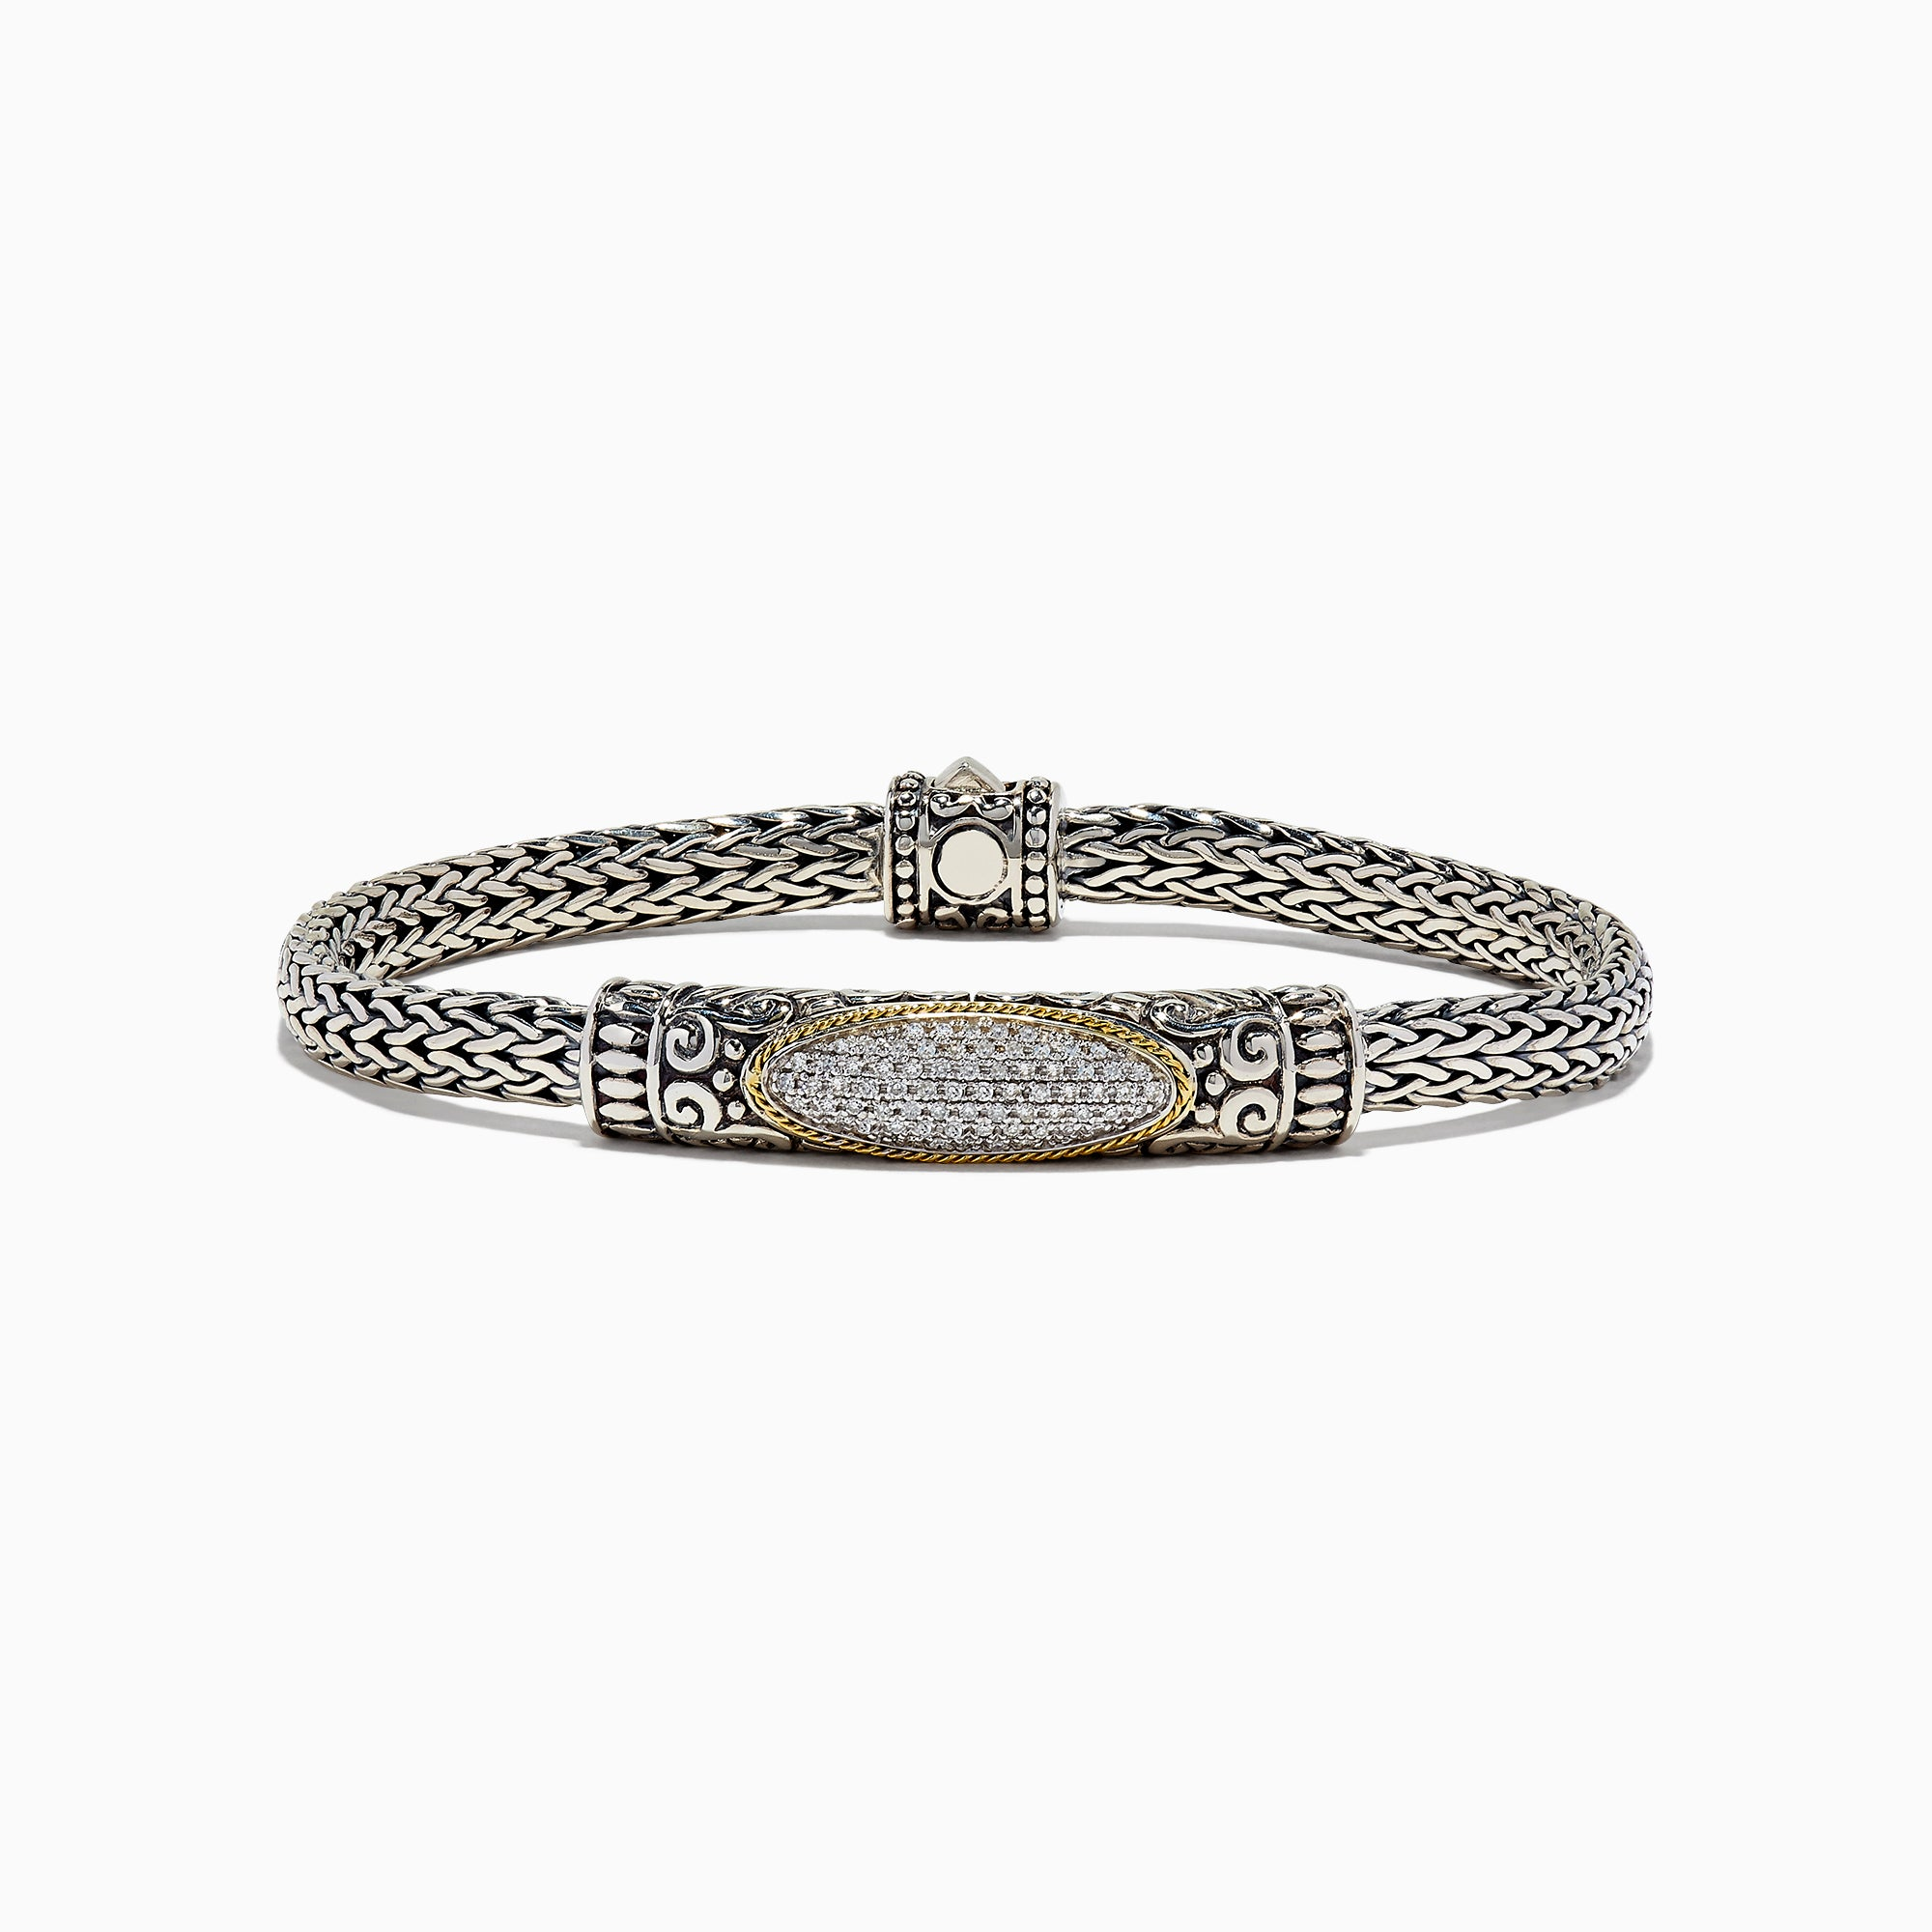 Effy 925 Sterling Silver and 18K Gold Accented Diamond Bracelet, 0.30 TCW